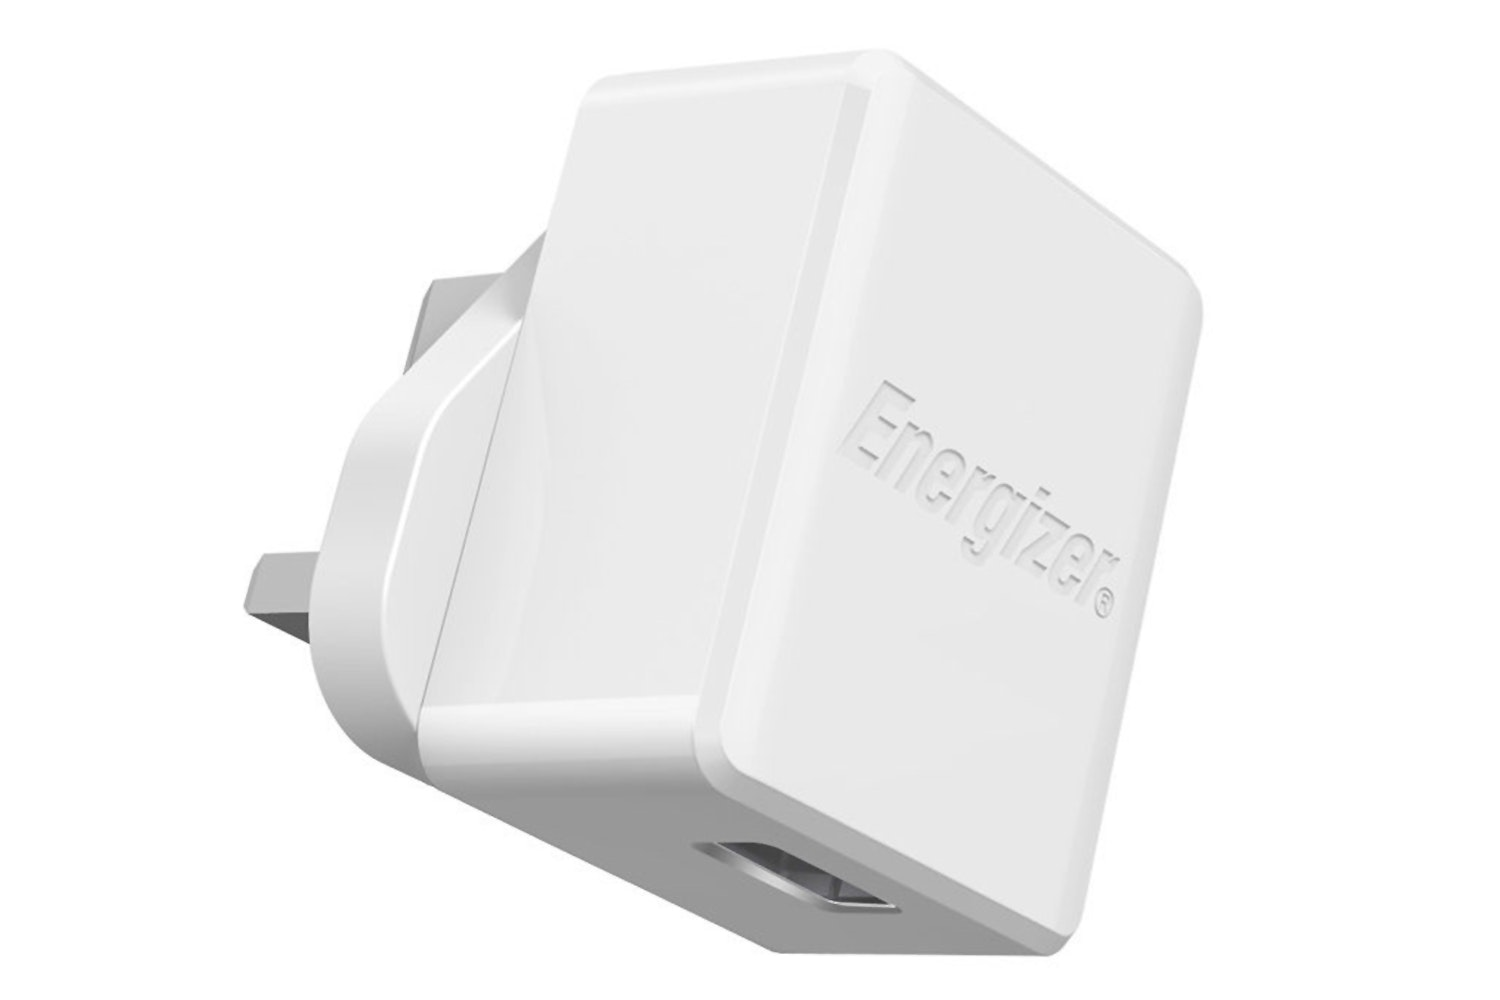 Energizer 2.4A 1 USB Wall Charger With Lightning Cable | White